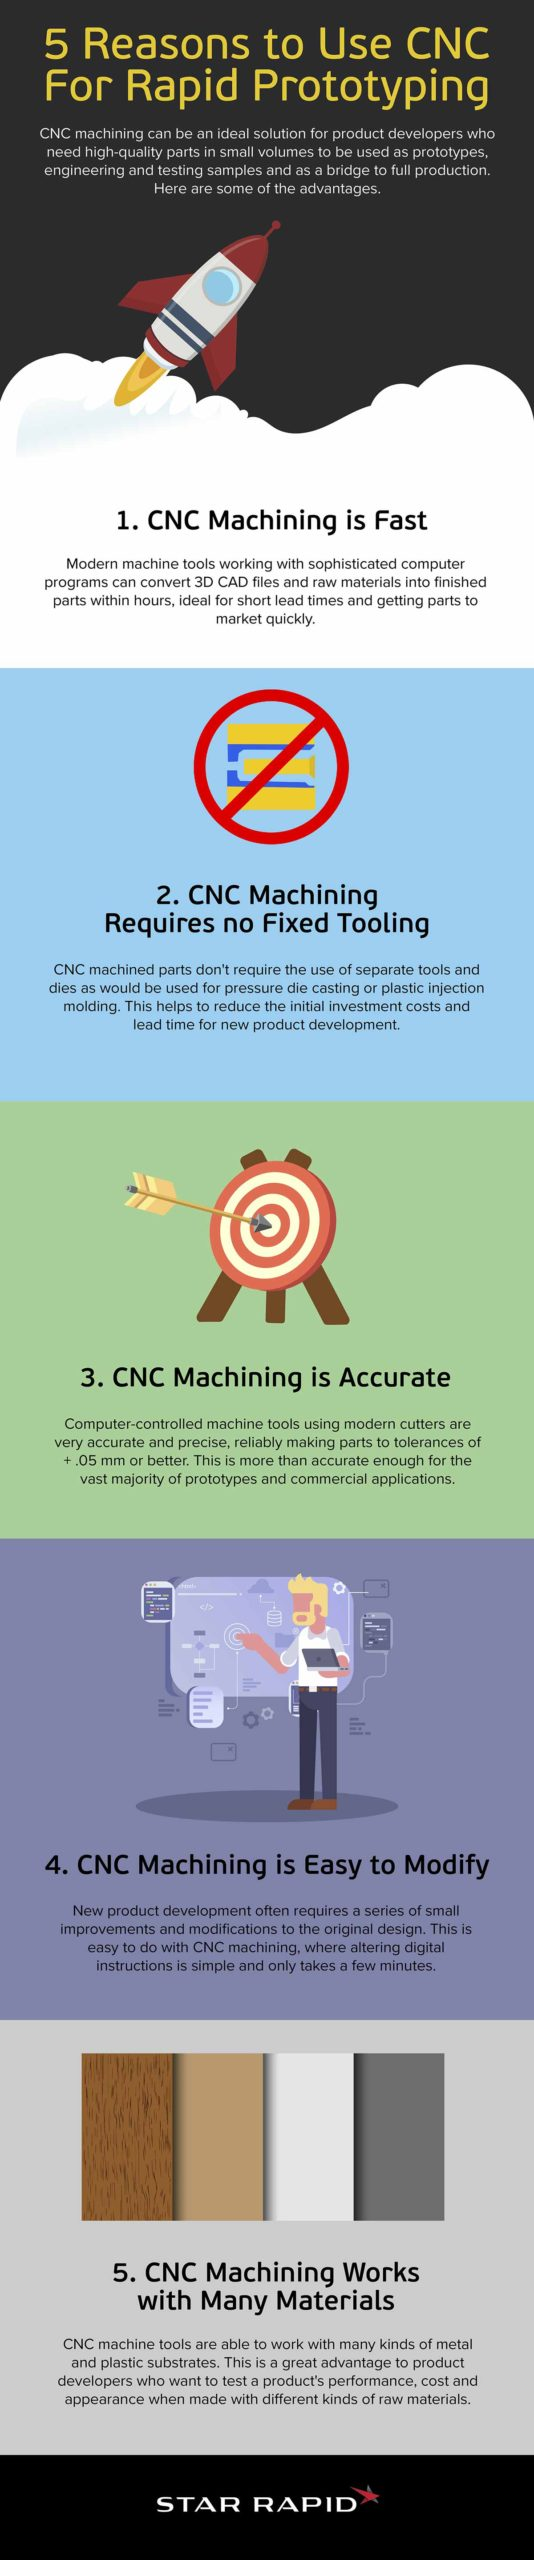 CNC Medical Industry Infographic Image